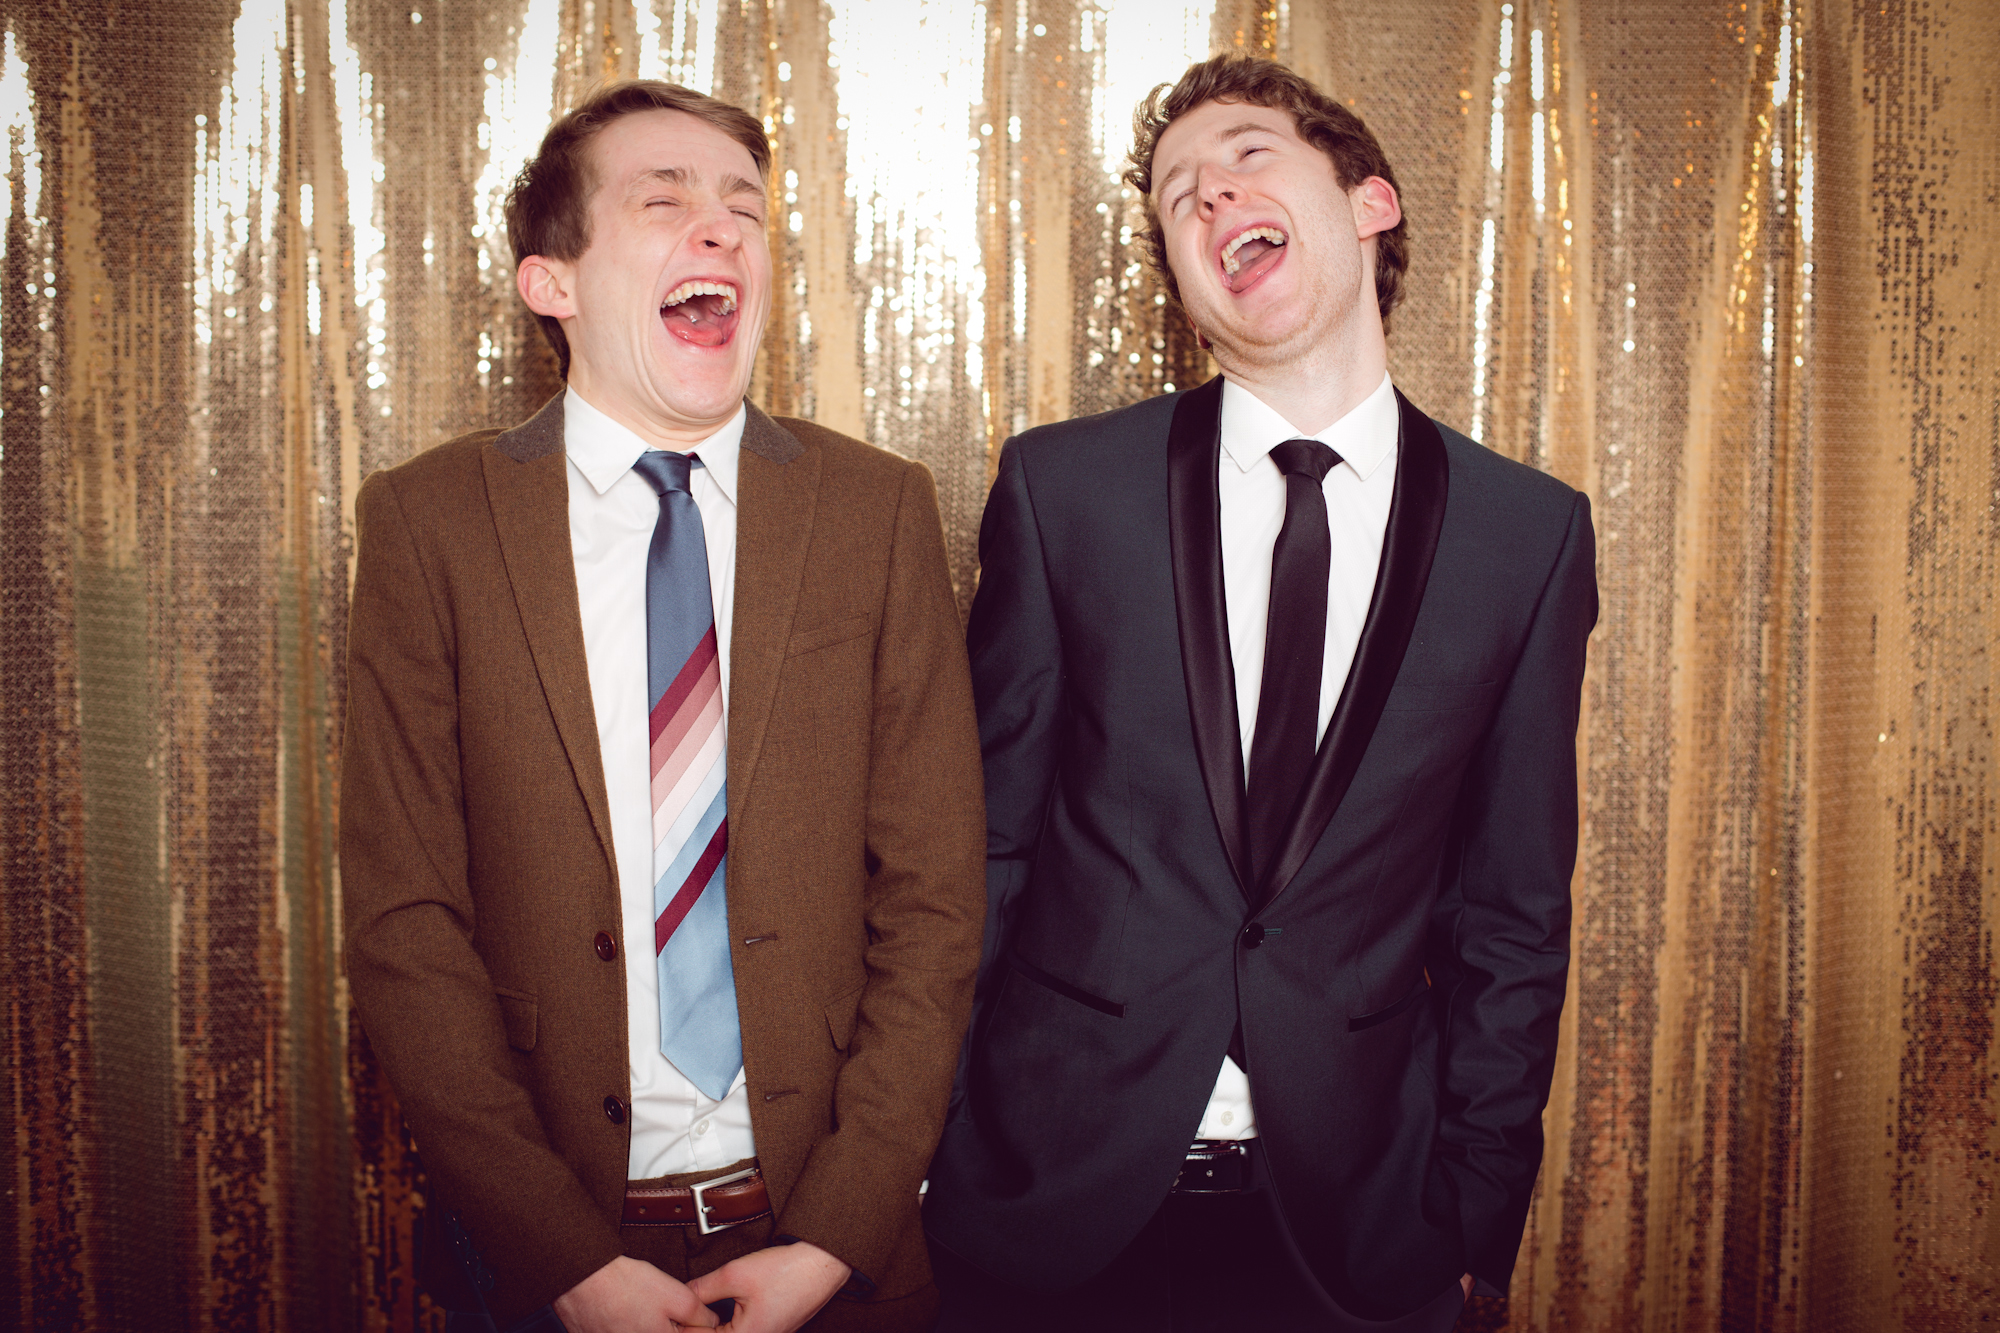 Bethans 21st photo booth - small -107.jpg